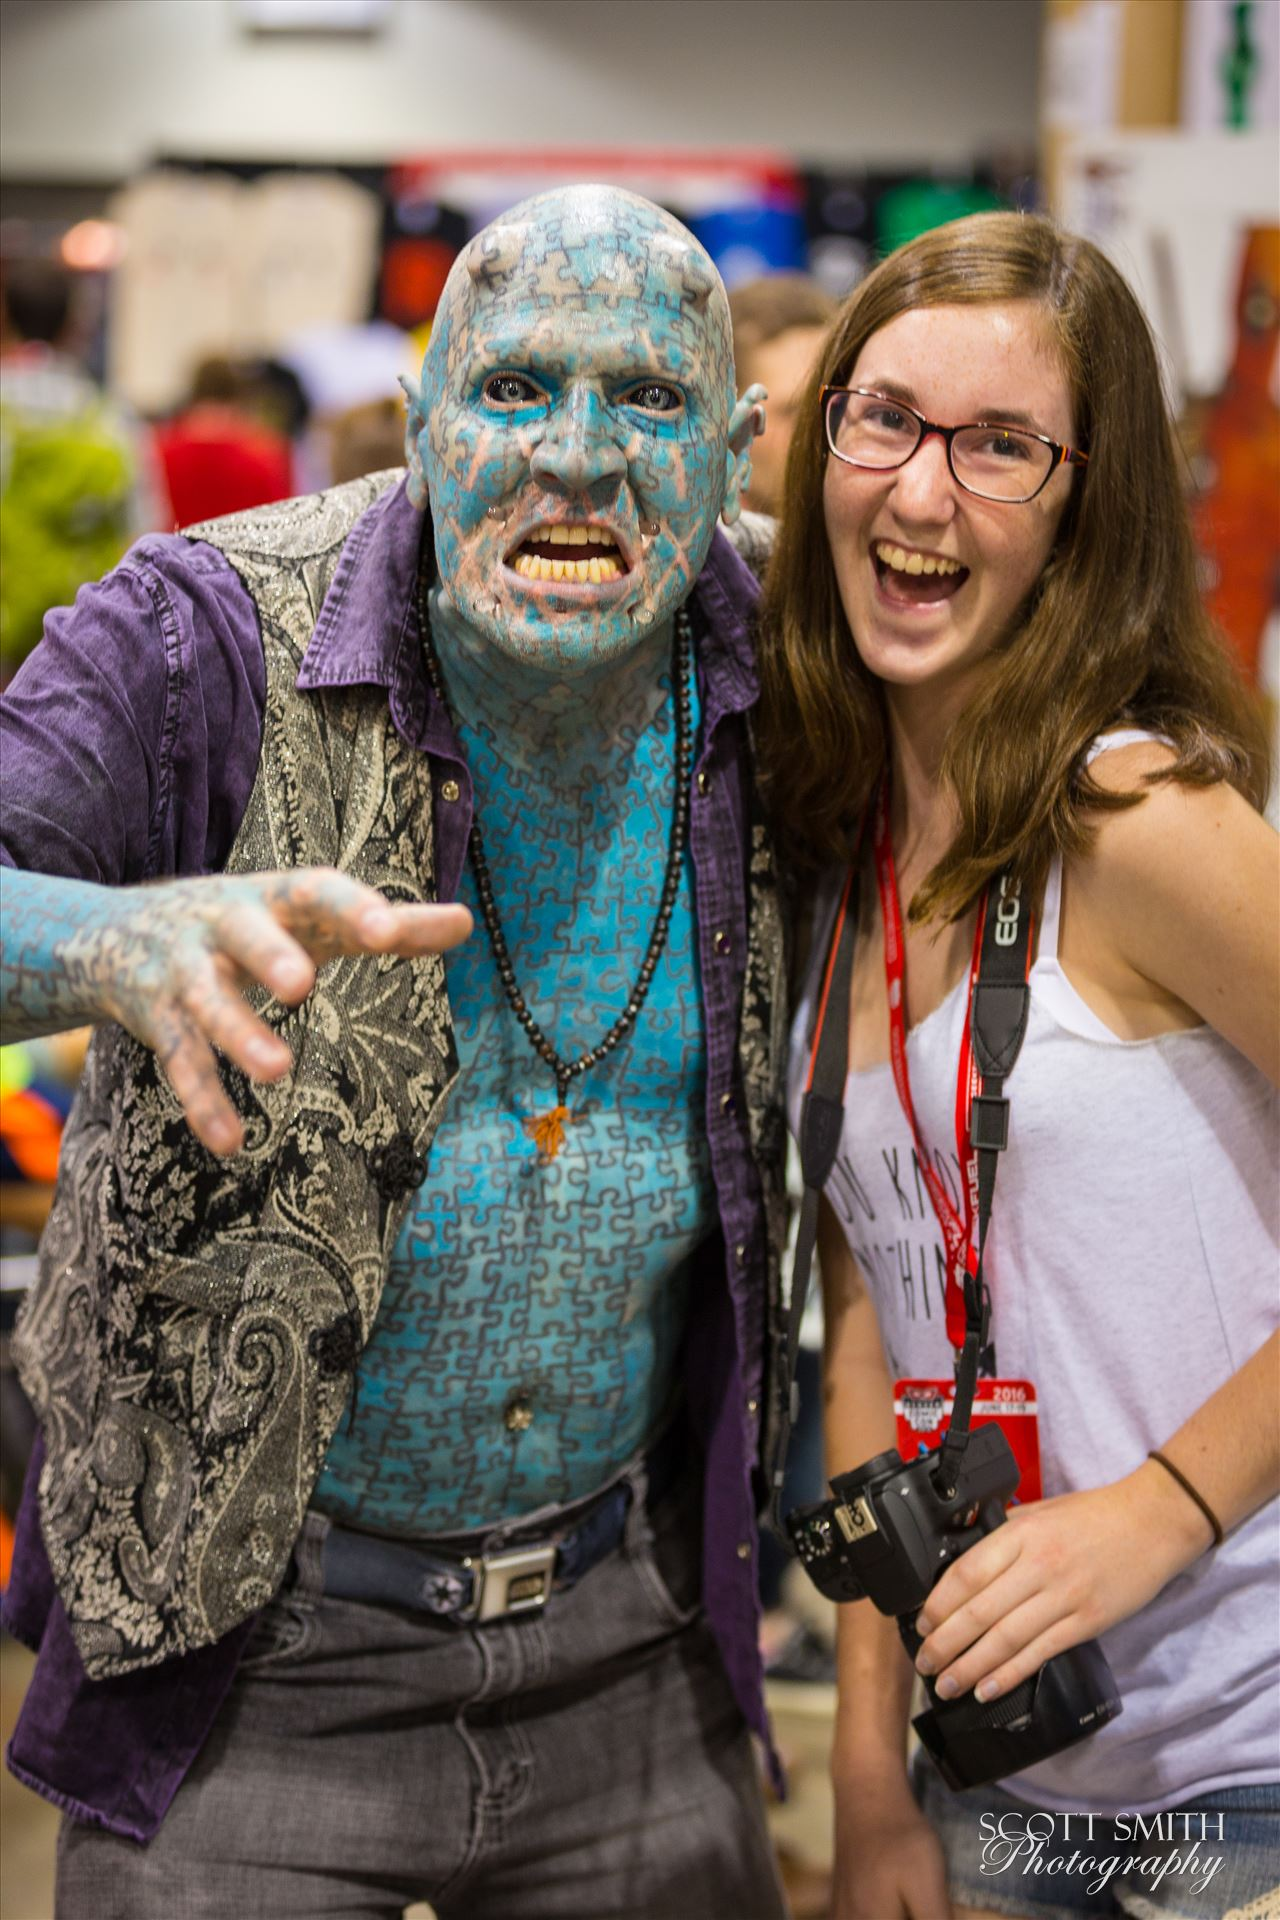 Denver Comic Con 2016 32 - Denver Comic Con 2016 at the Colorado Convention Center. The Enigma with my daughter. by D Scott Smith